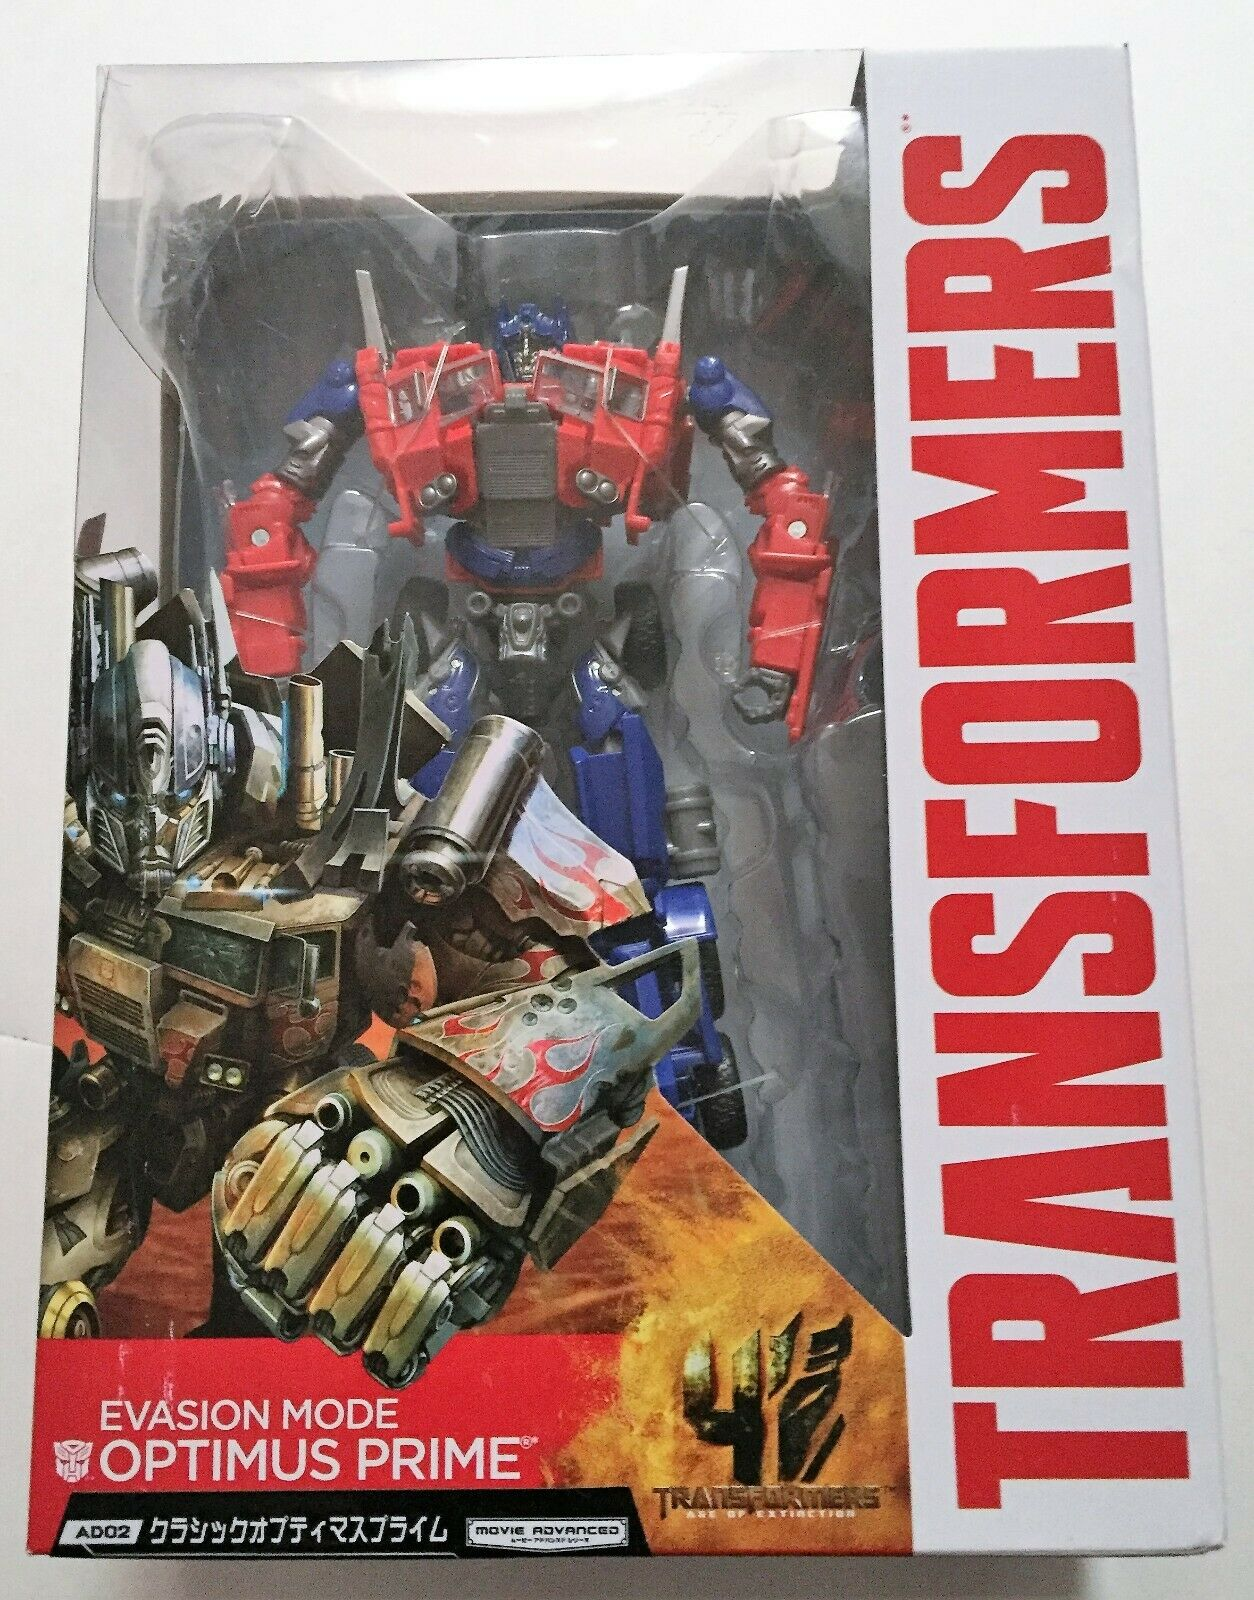 Takara Transformers AOE AD-02 Evasion Mode Optimus Prime NEW MISB IN USA